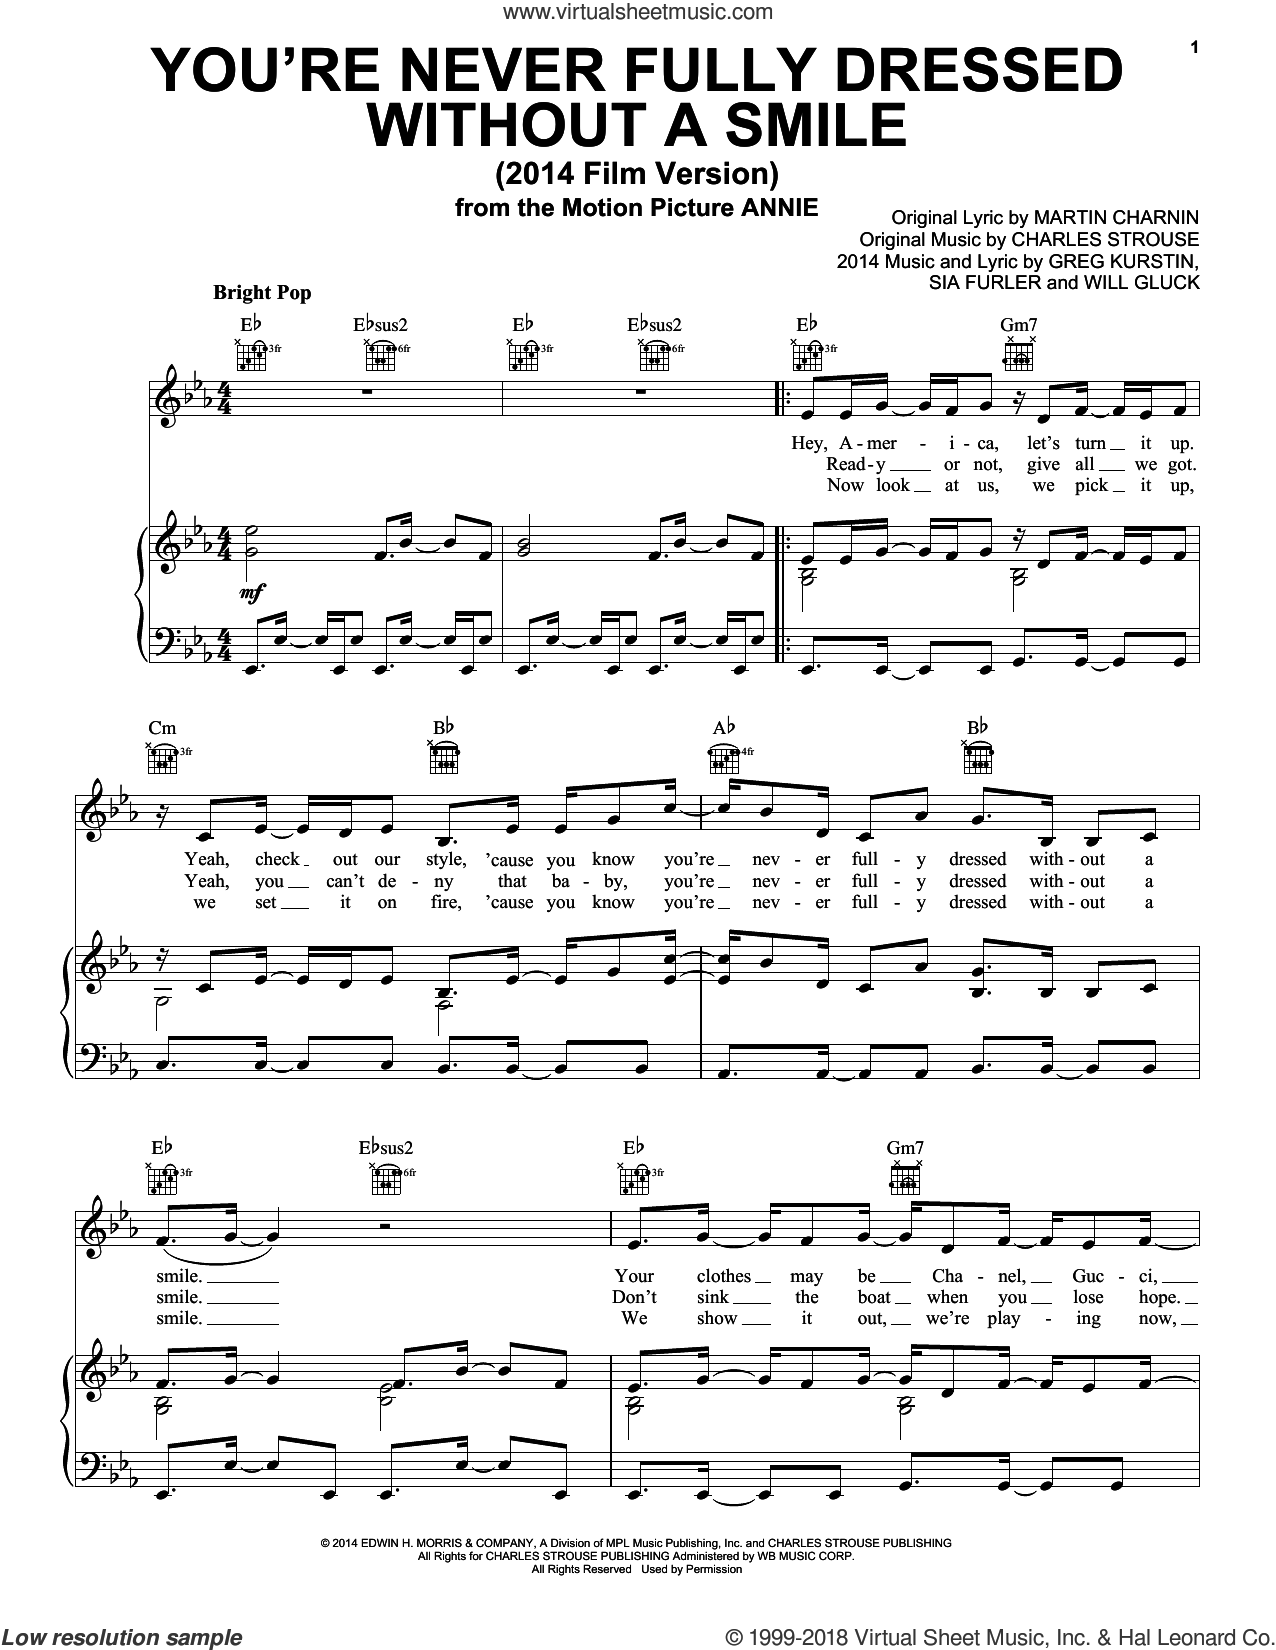 You're Never Fully Dressed Without A Smile (2014 Film Version) sheet music for voice, piano or guitar by Charles Strouse, Christoph Willibald Gluck, Greg Kurstin, Martin Charnin and Sia Furler, intermediate skill level